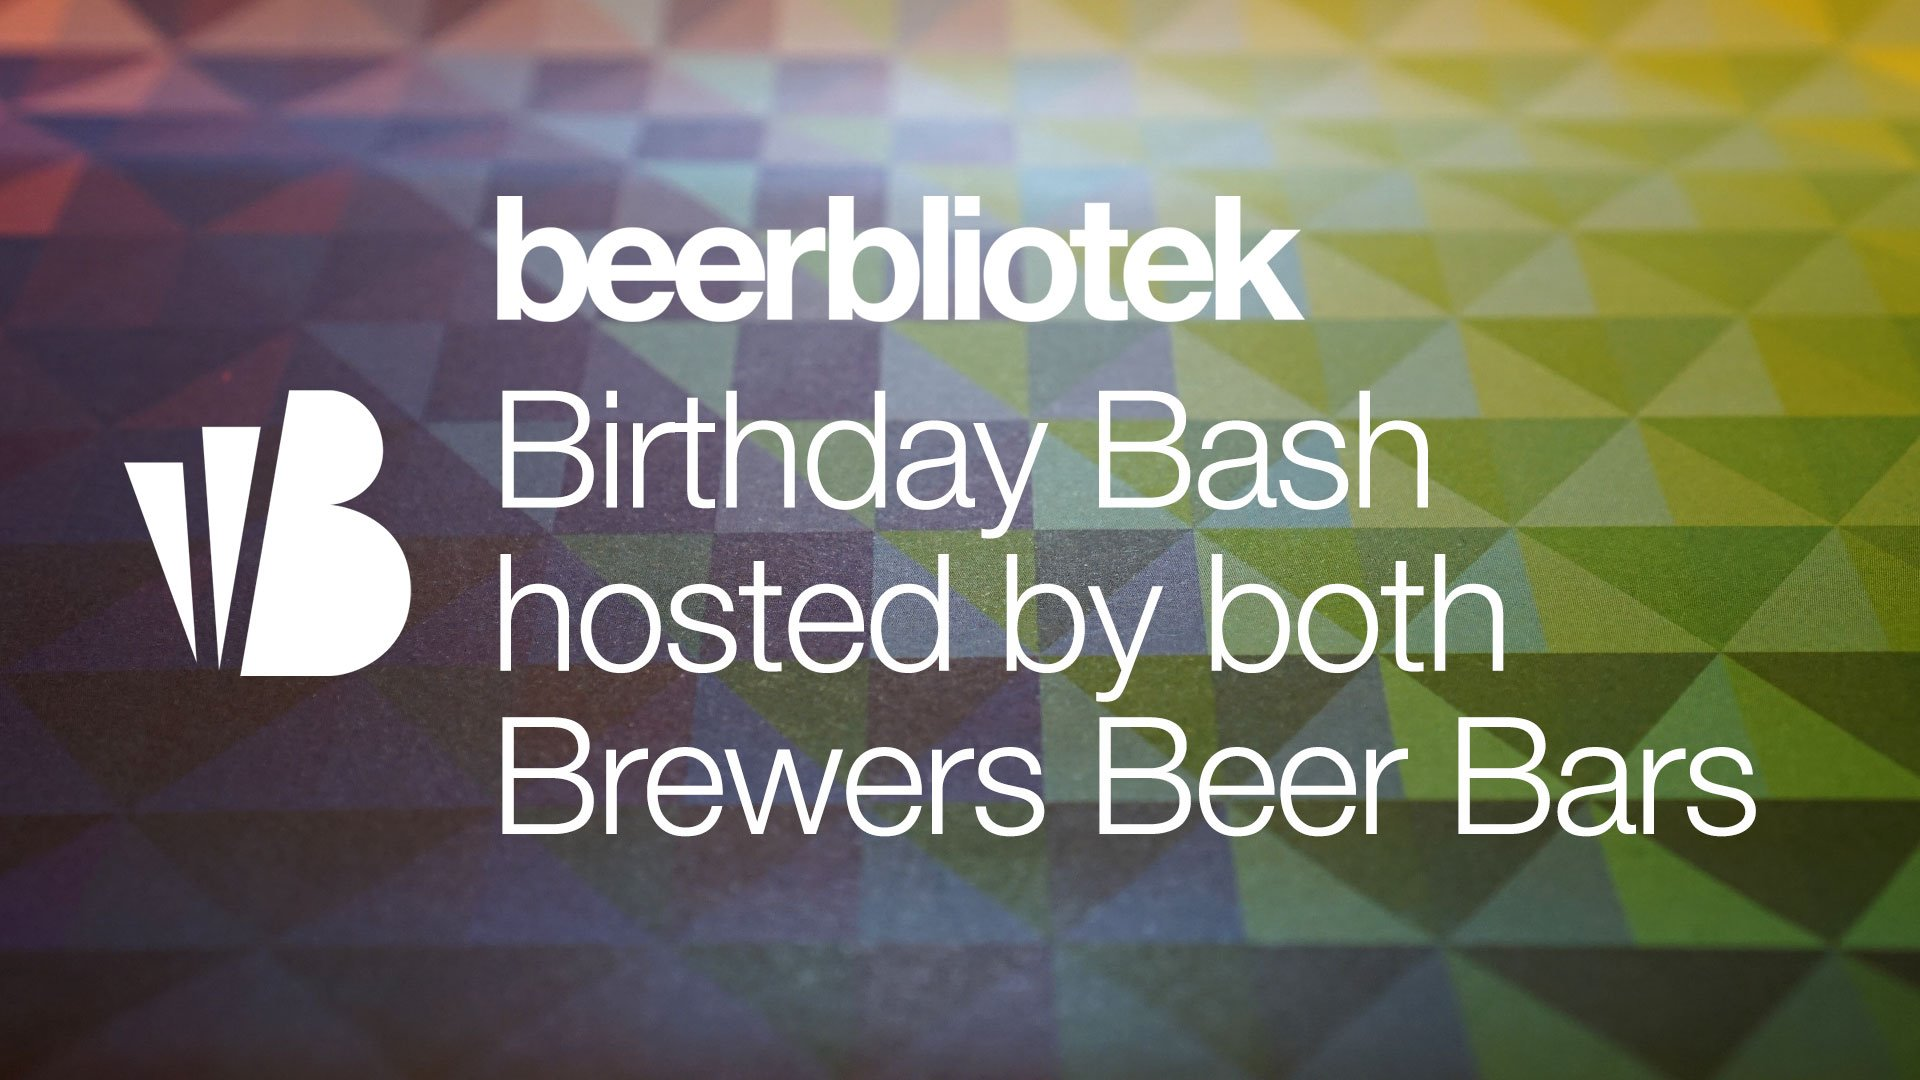 Event banner for Beerbliotek Birthday Bash at both Brewers Beer Bars